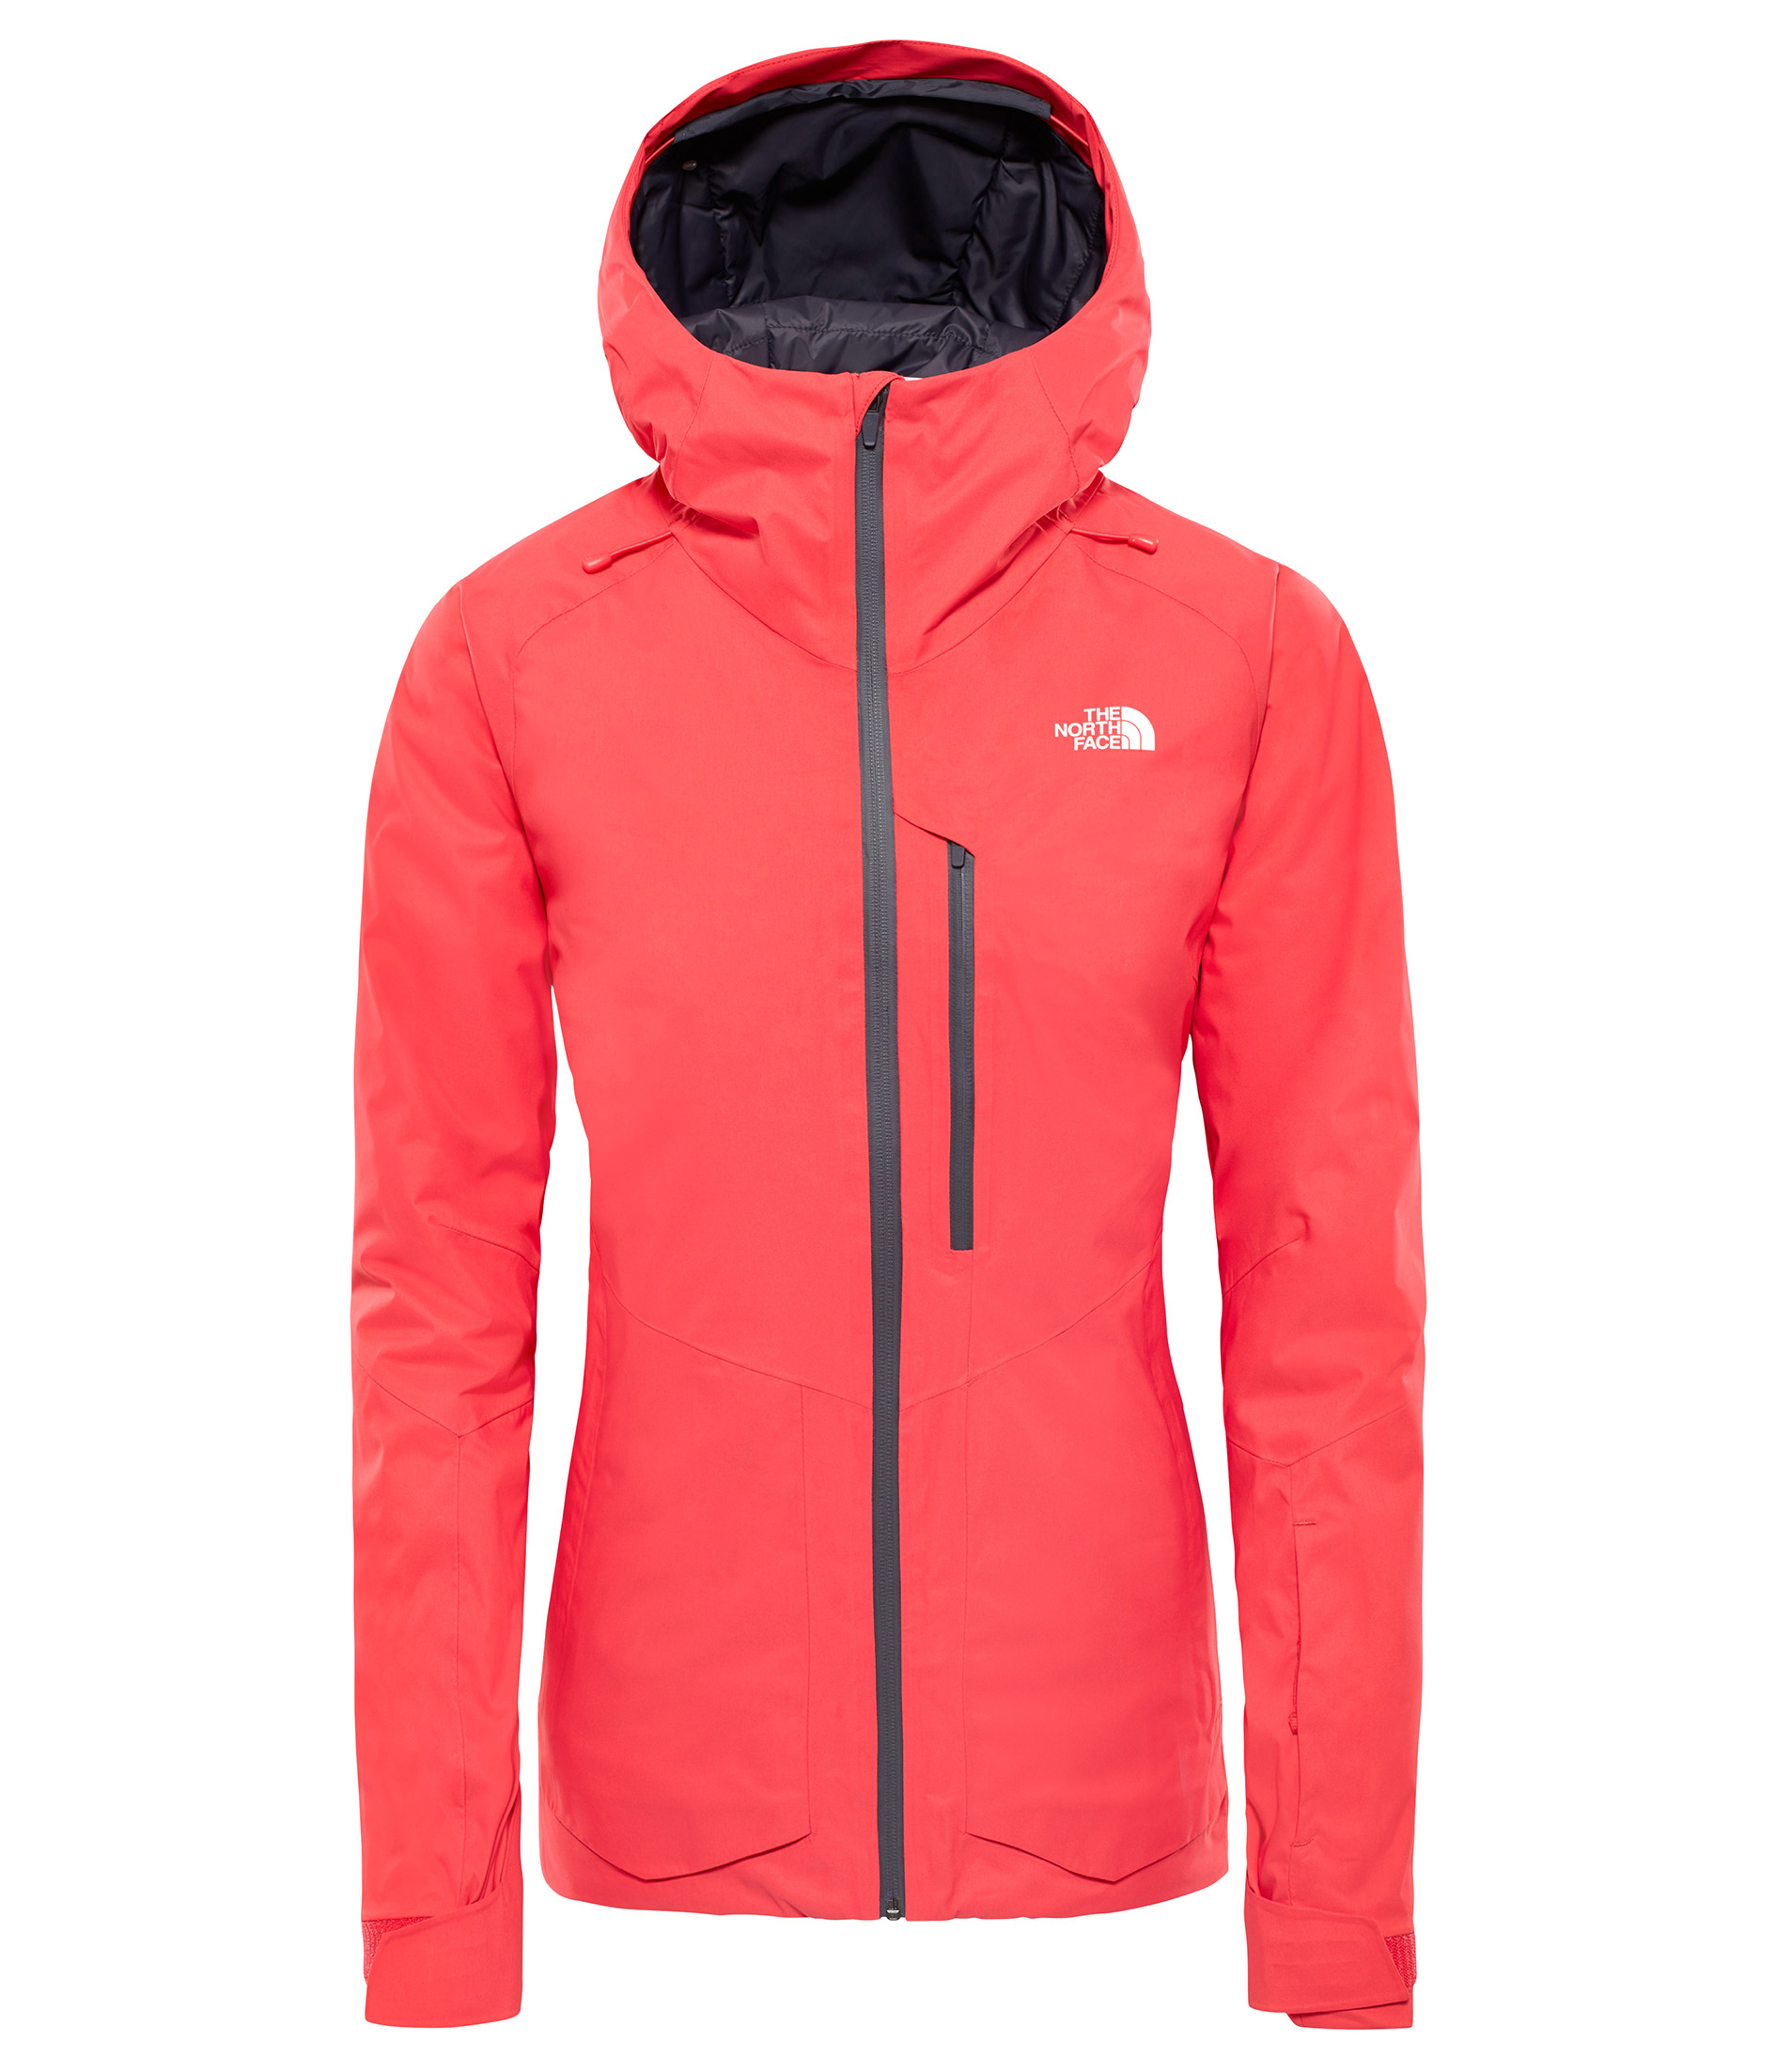 THE NORTH FACE W SICKLINE JACKET, TEABERRY PINK velikost: M